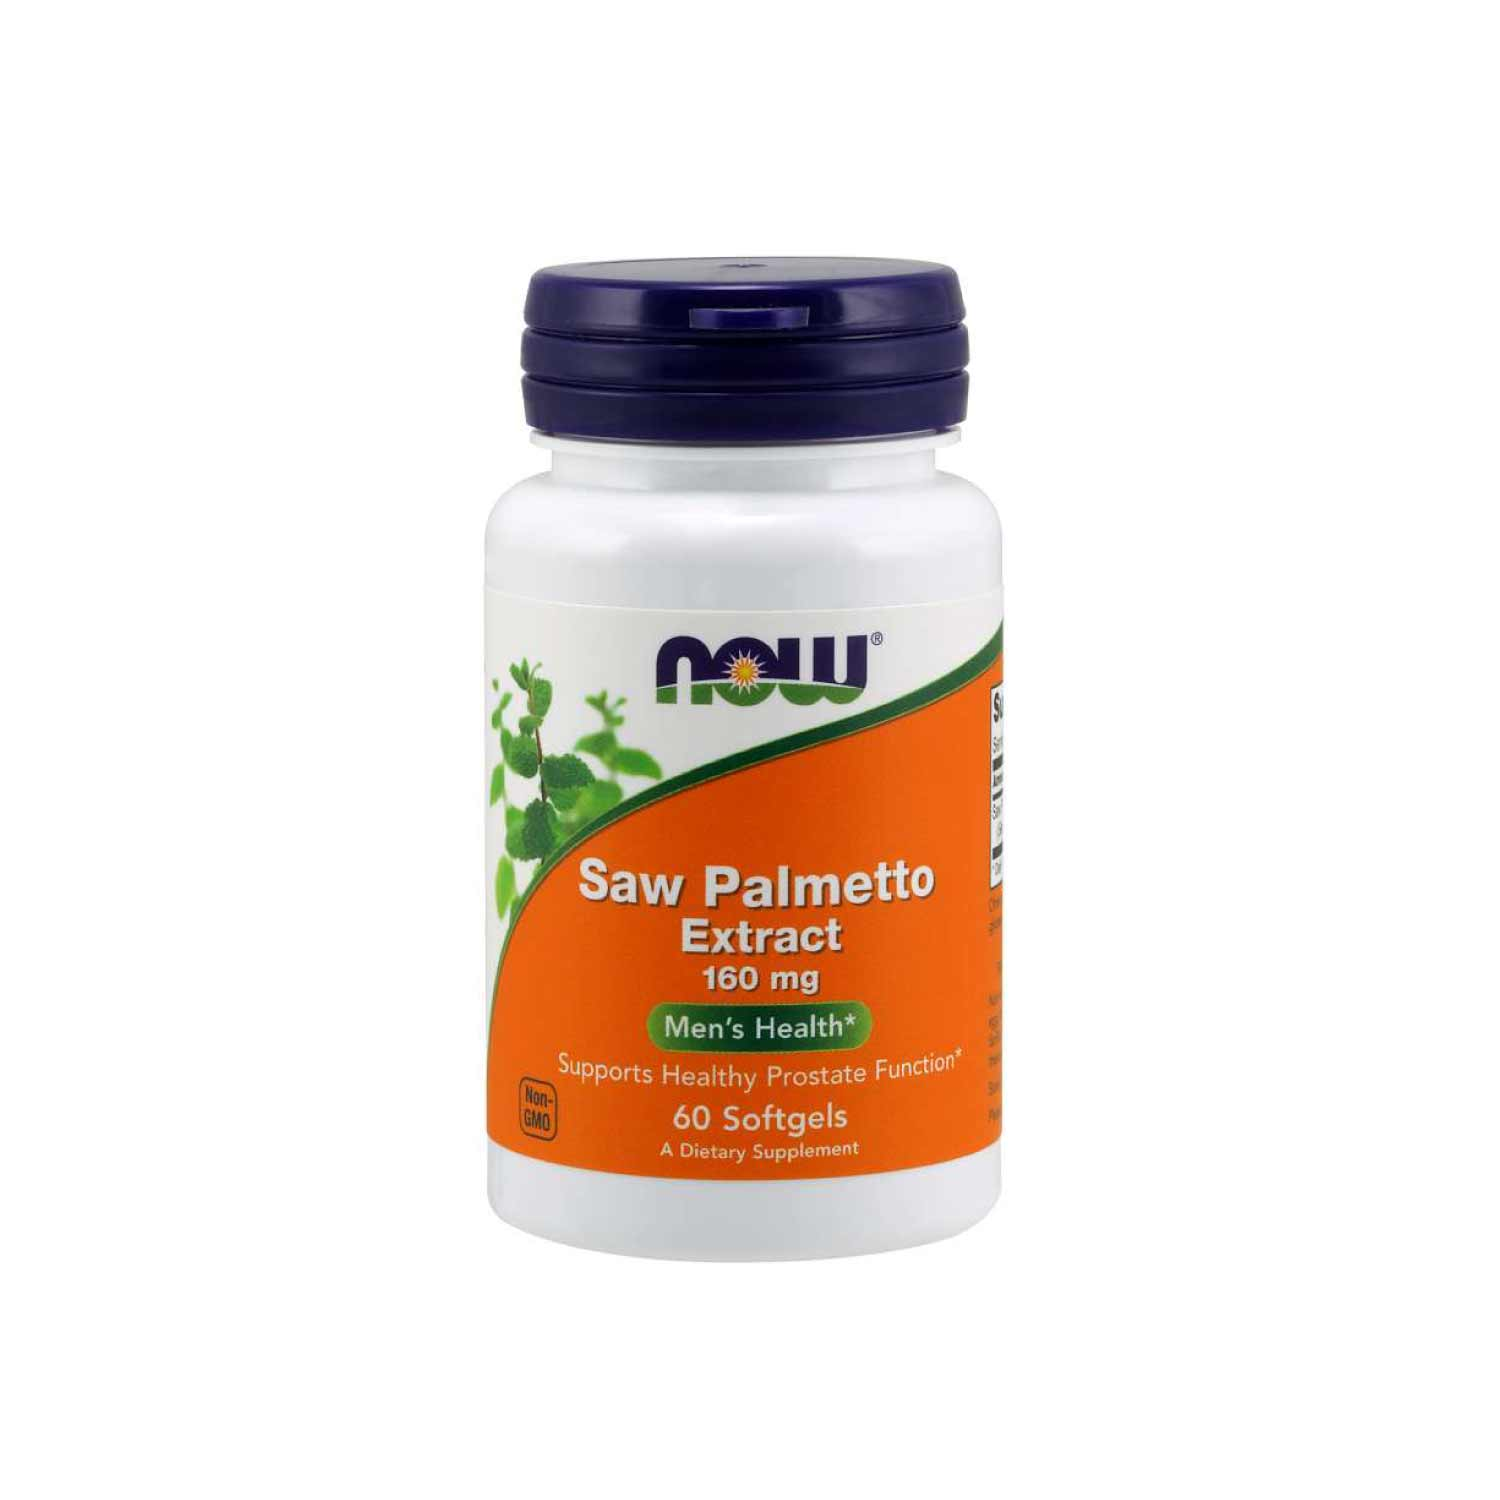 NOW Saw Palmetto Extract 160 mg, 60 Softgels